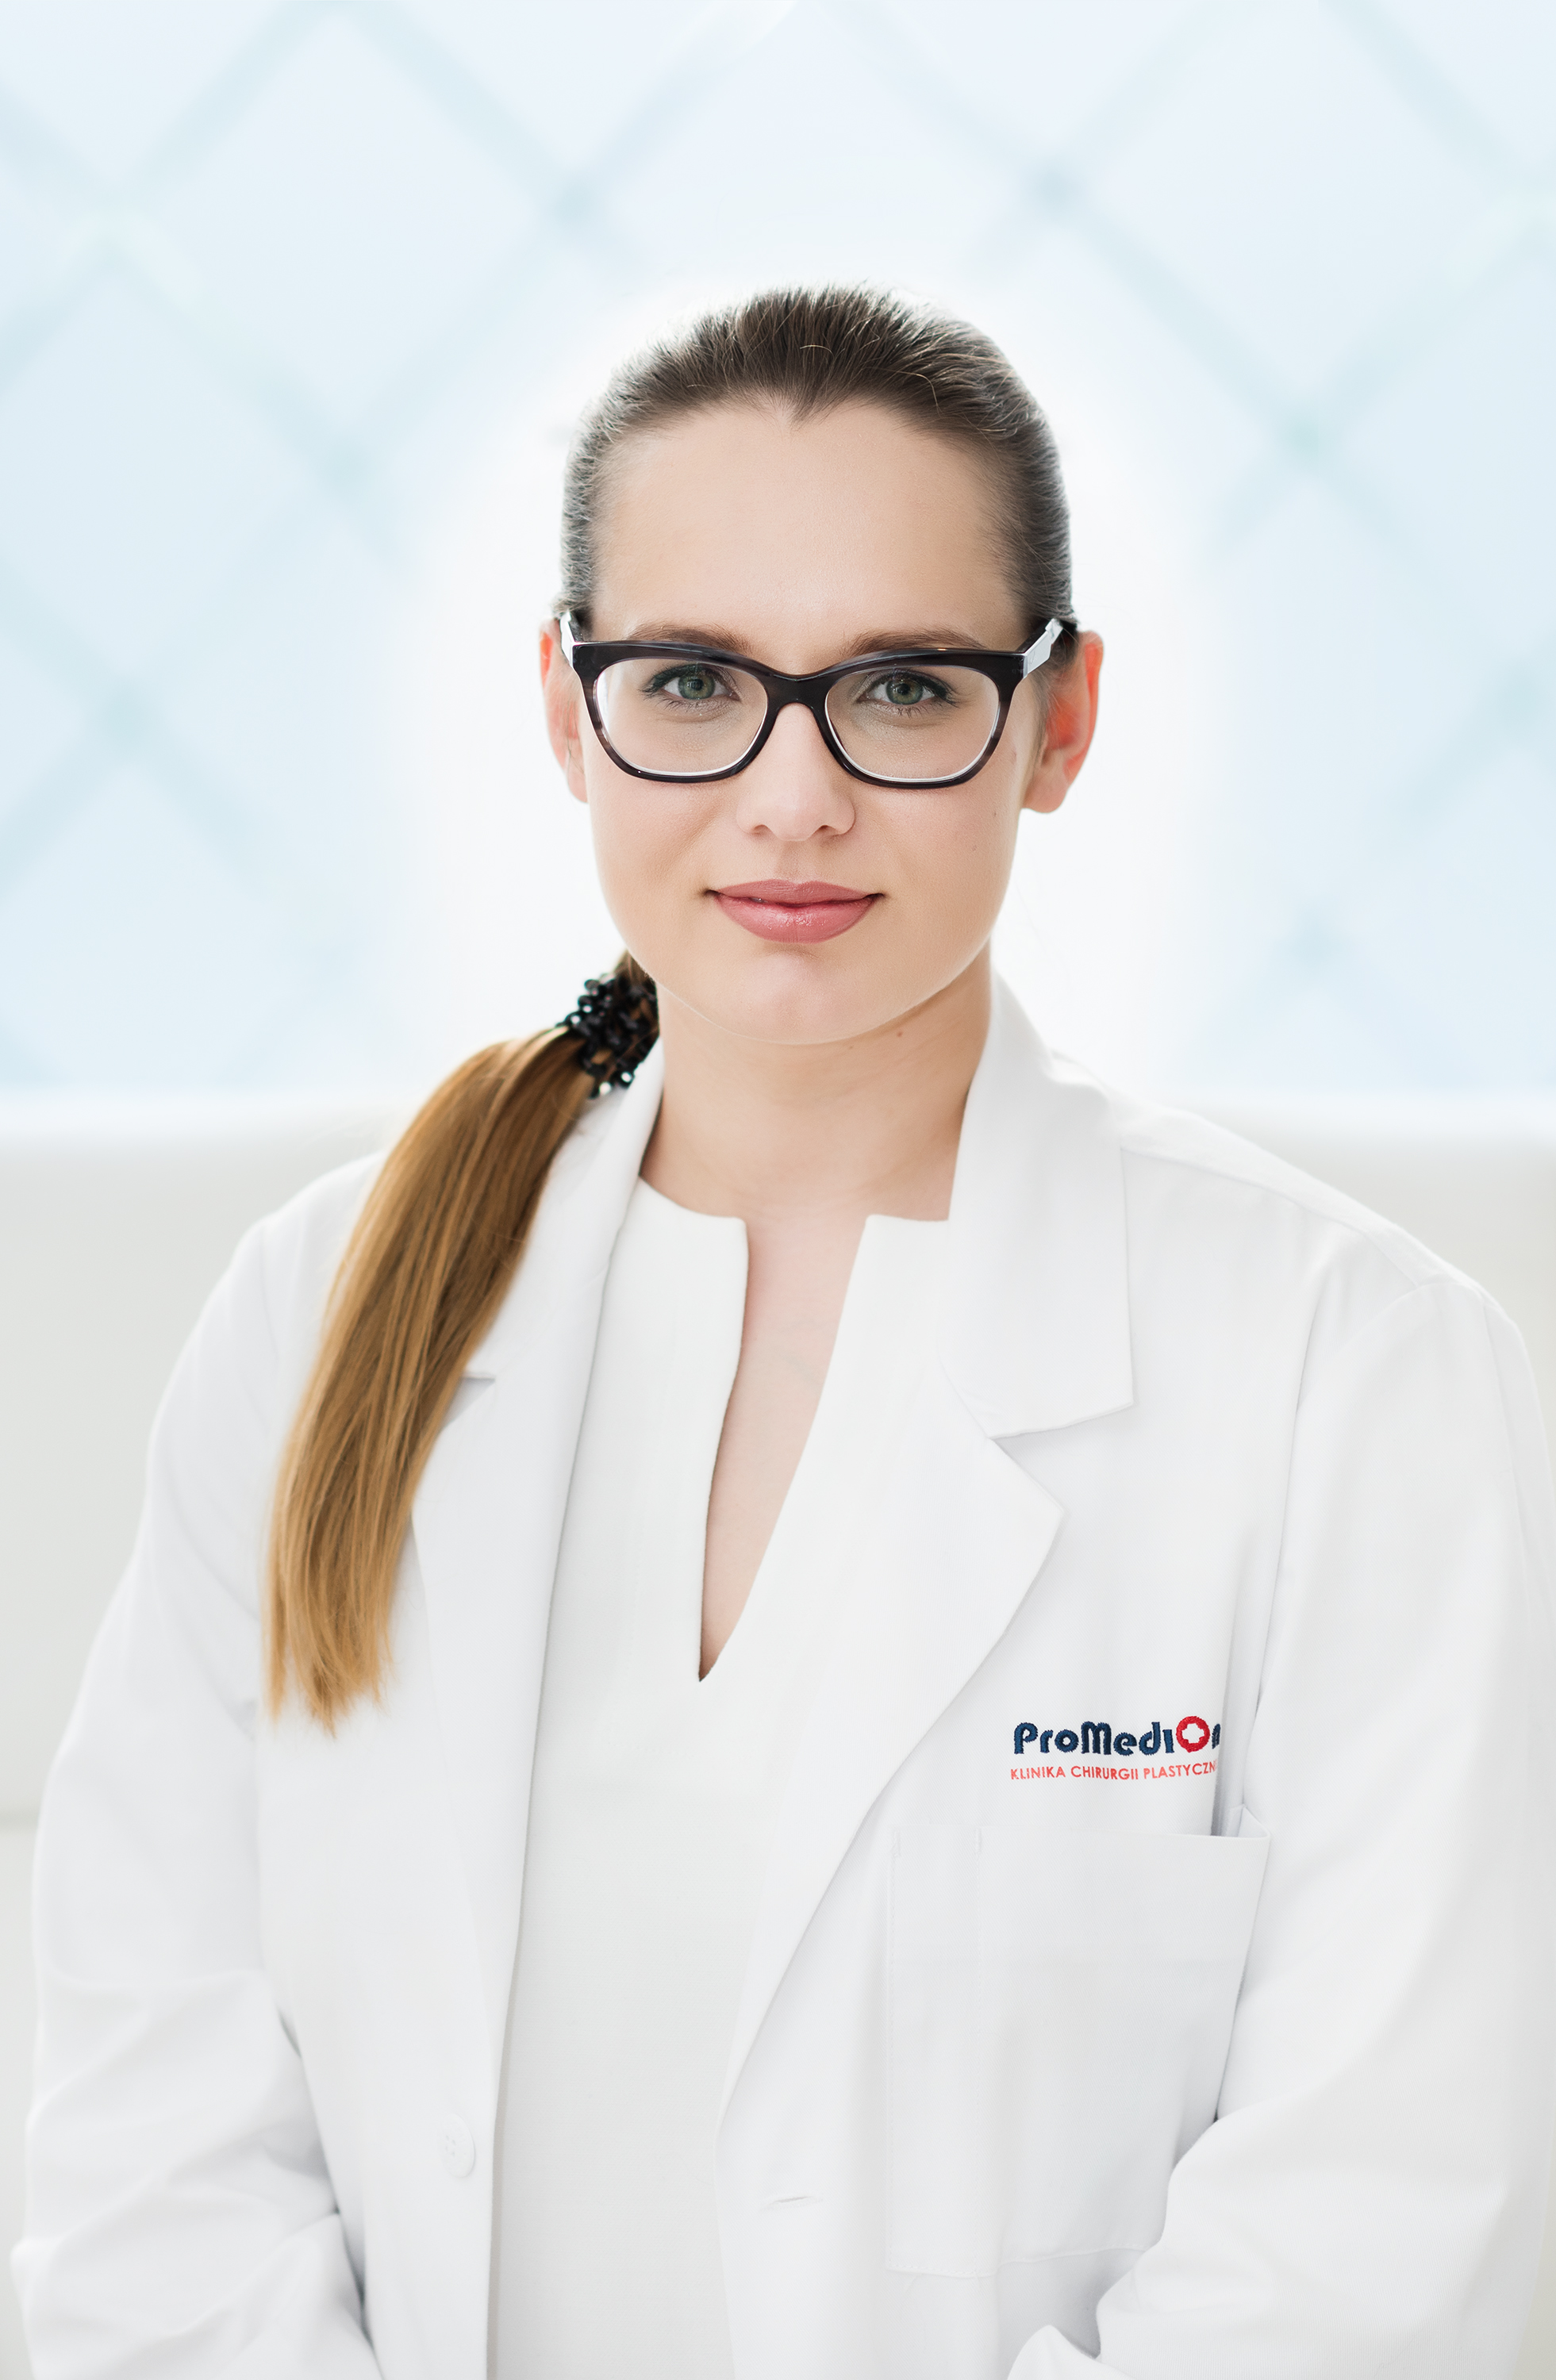 Anna Szczerek – medical doctor